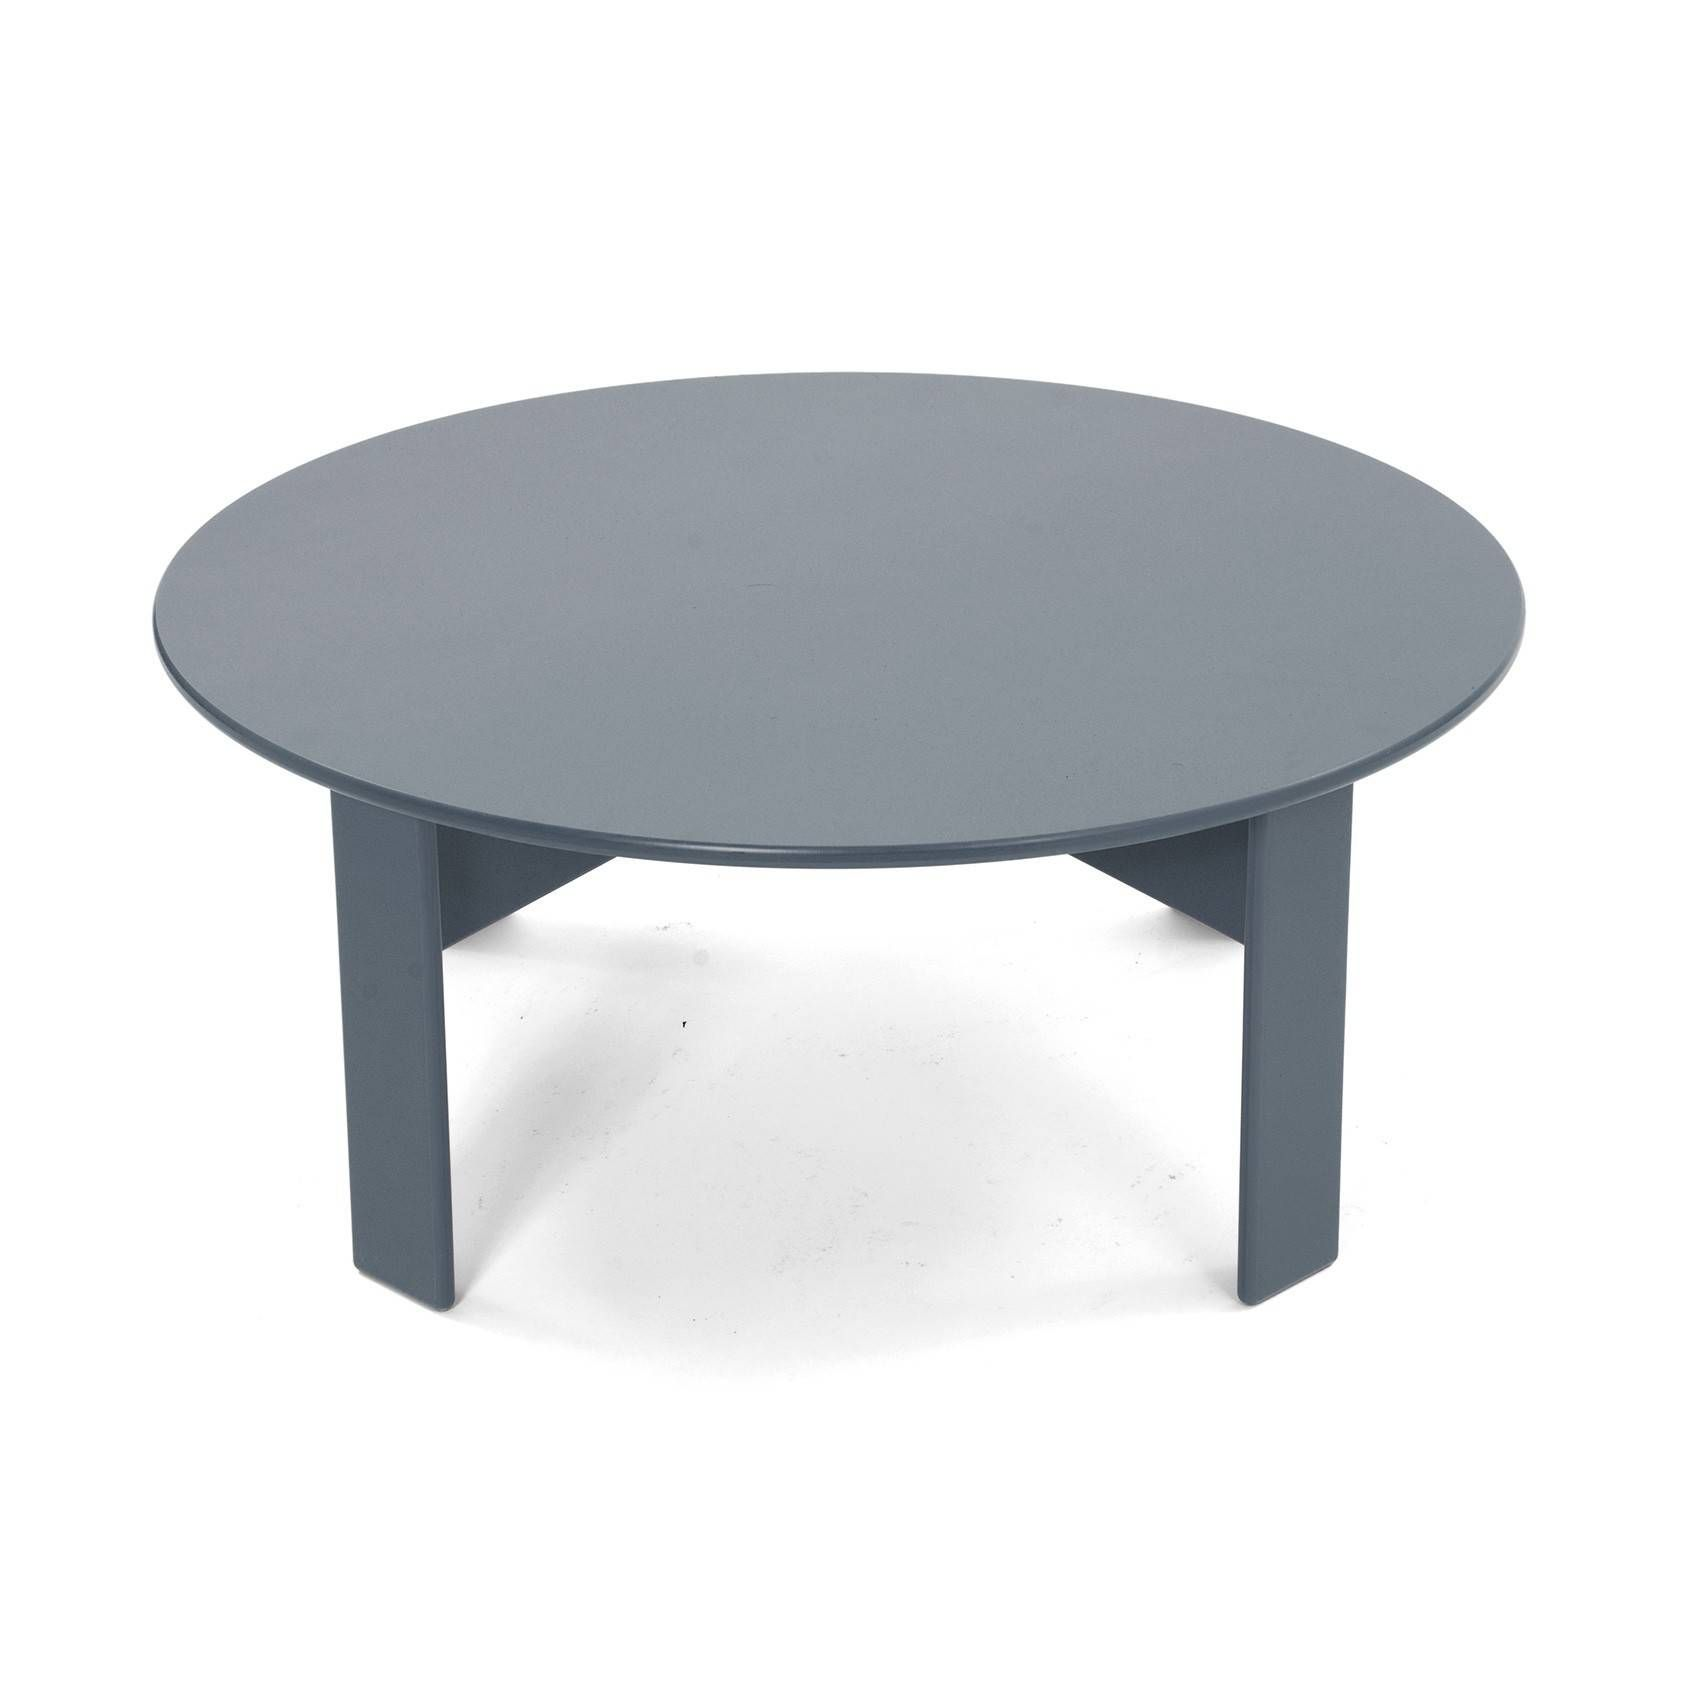 Kidney Shaped Glass Coffee Table Collection Round Glass Top Coffee Table Fresh Square Glass T Coffee Table Marble Top Coffee Table Mirrored Coffee Tables [ 1700 x 1700 Pixel ]